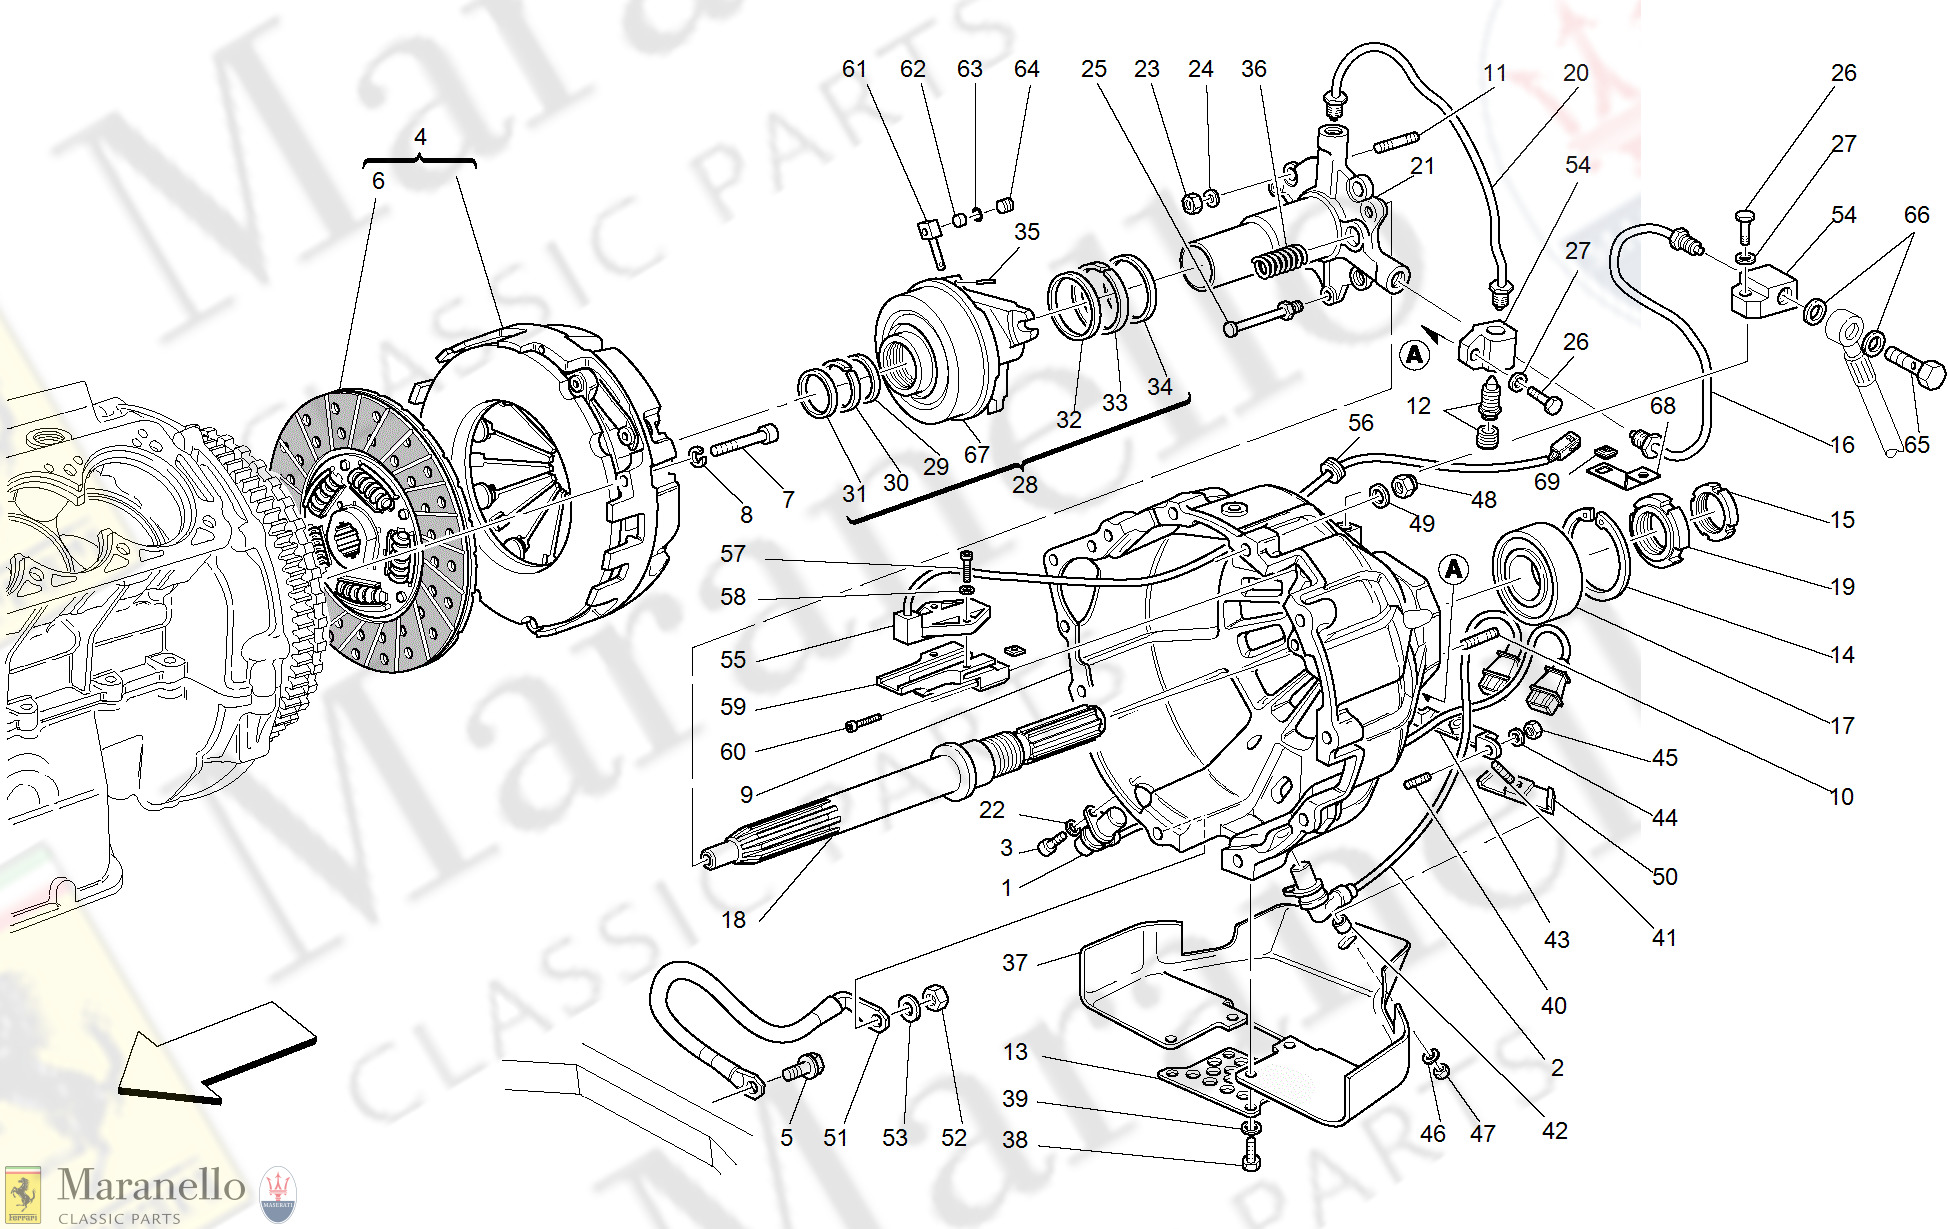 029 - Clutch And Controls -Valid For F1-